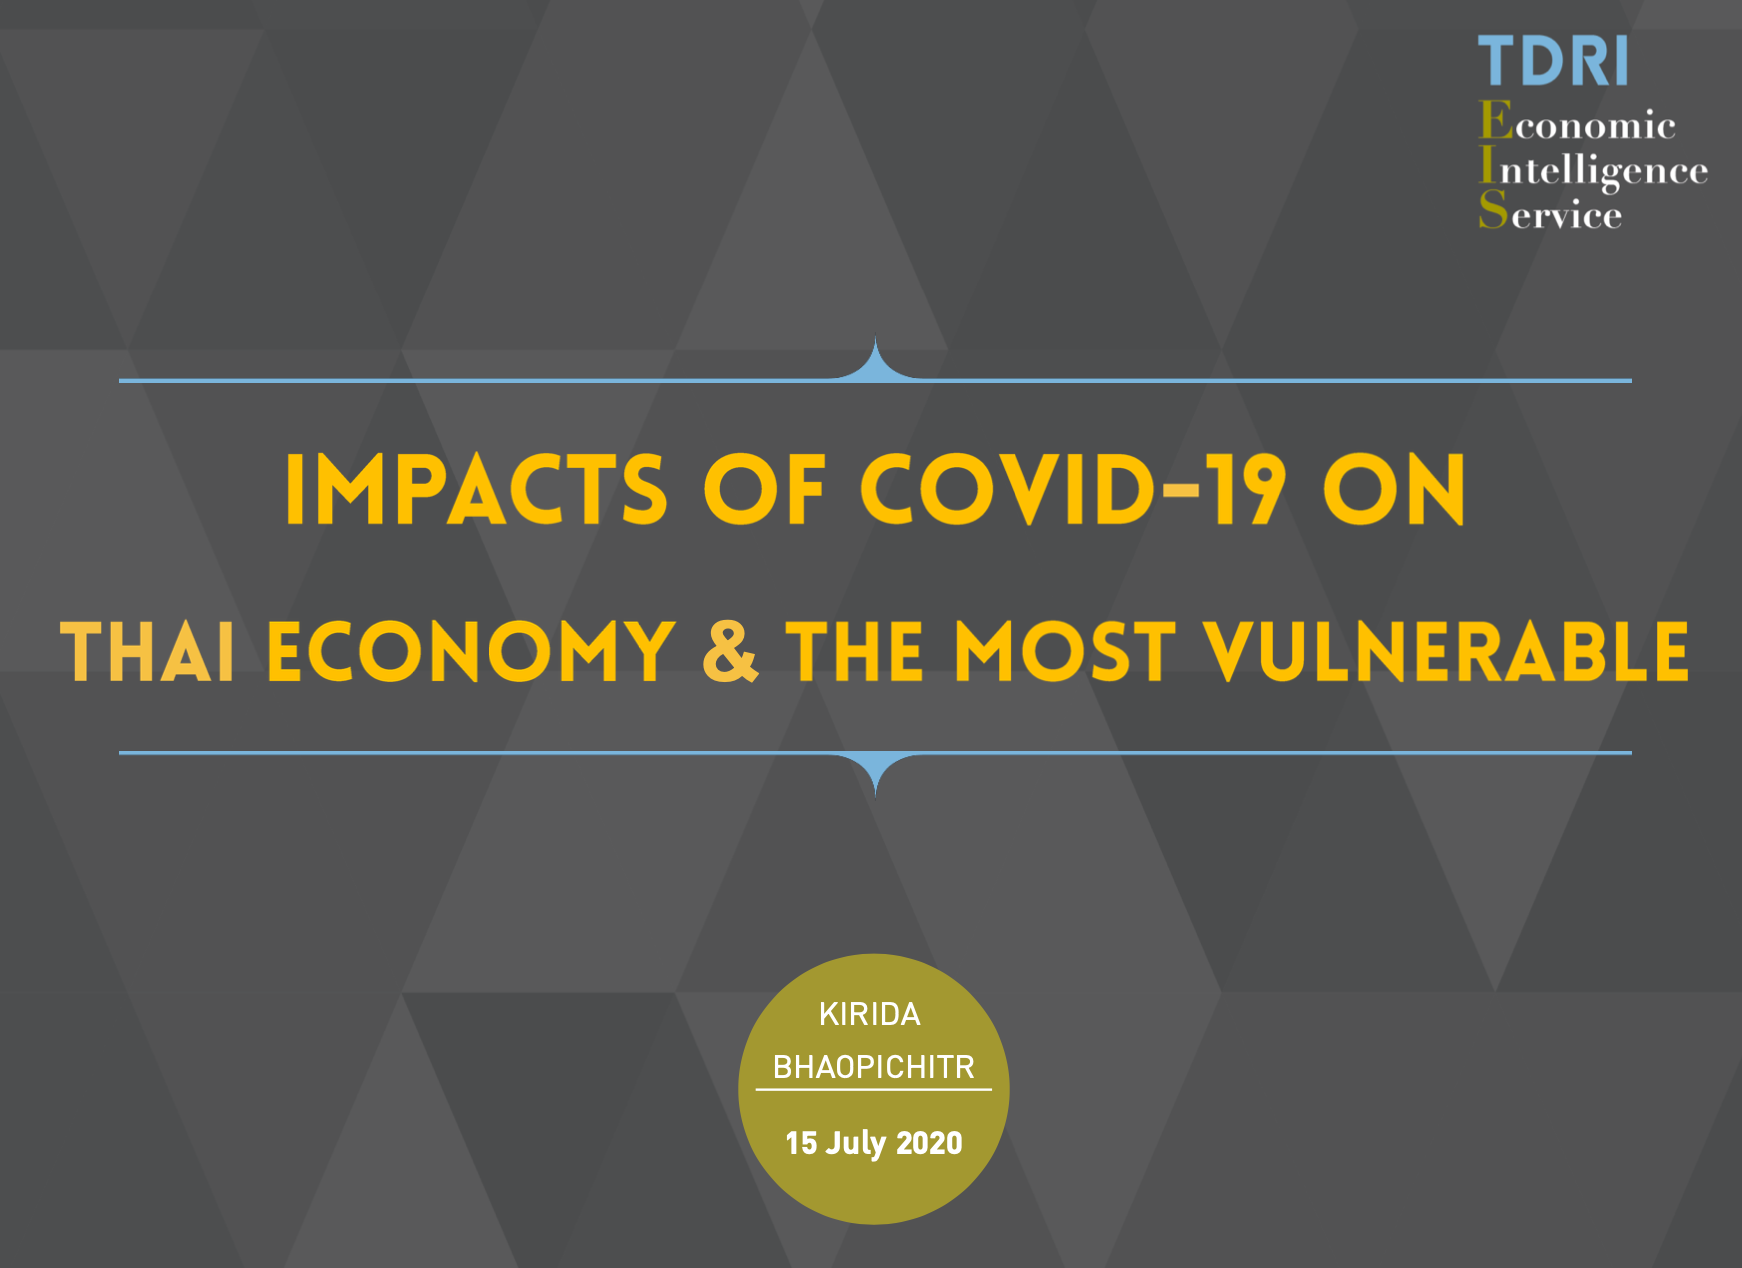 Impact of COVID 19 on Thailand (TDRI July 2020)